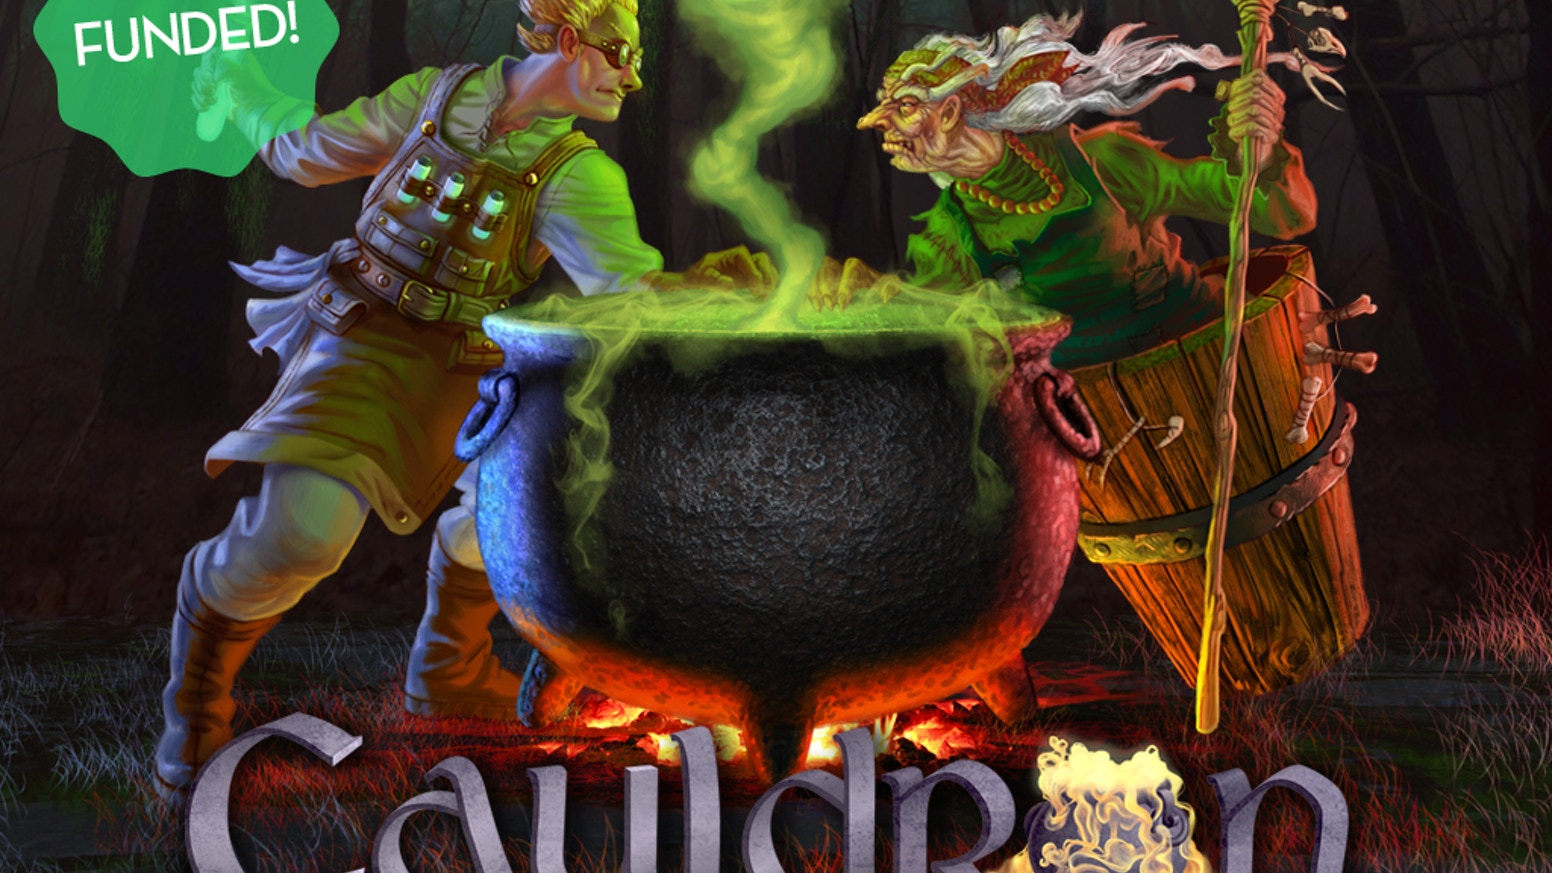 Harvest ingredients, brew potions and cast spells in this light, fun and highly interactive game (2-5 players, 60-90 minutes, ages 11+)